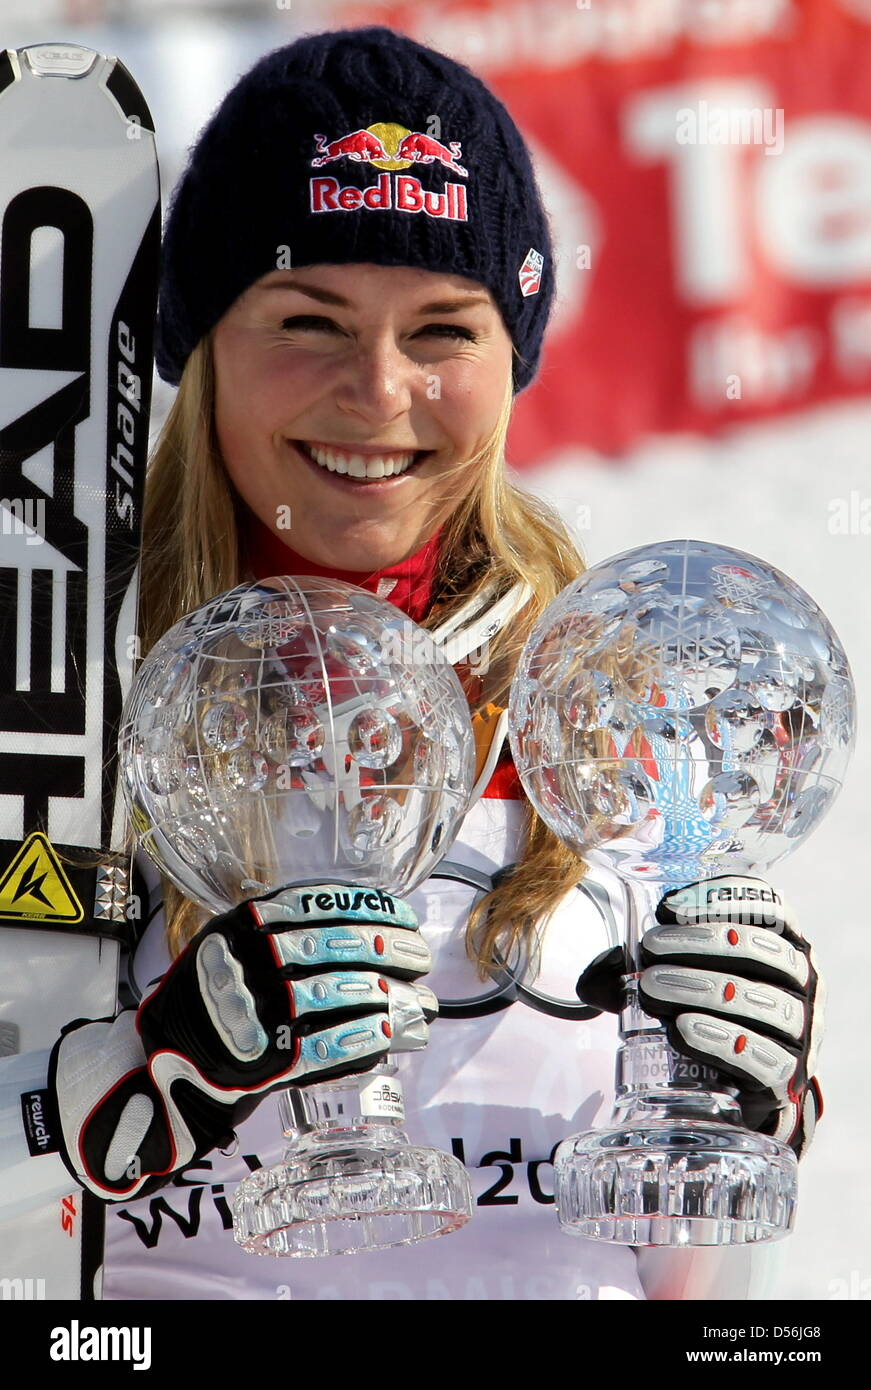 Lindsay Vonn from the USA poses with the trophies for the first-placed in the overall downhill and super G world - Stock Image